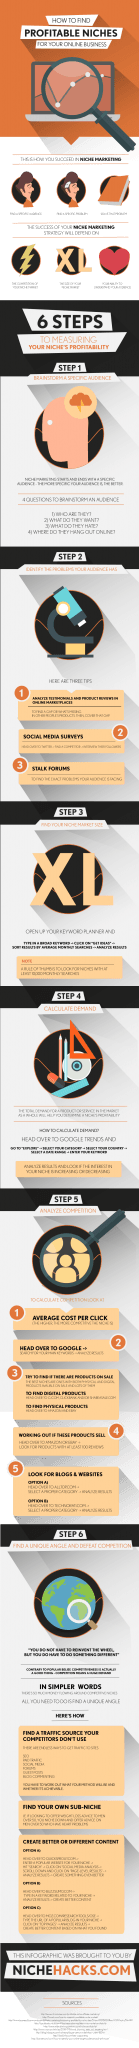 How To Start A Successful YouTube Channel - Infographic